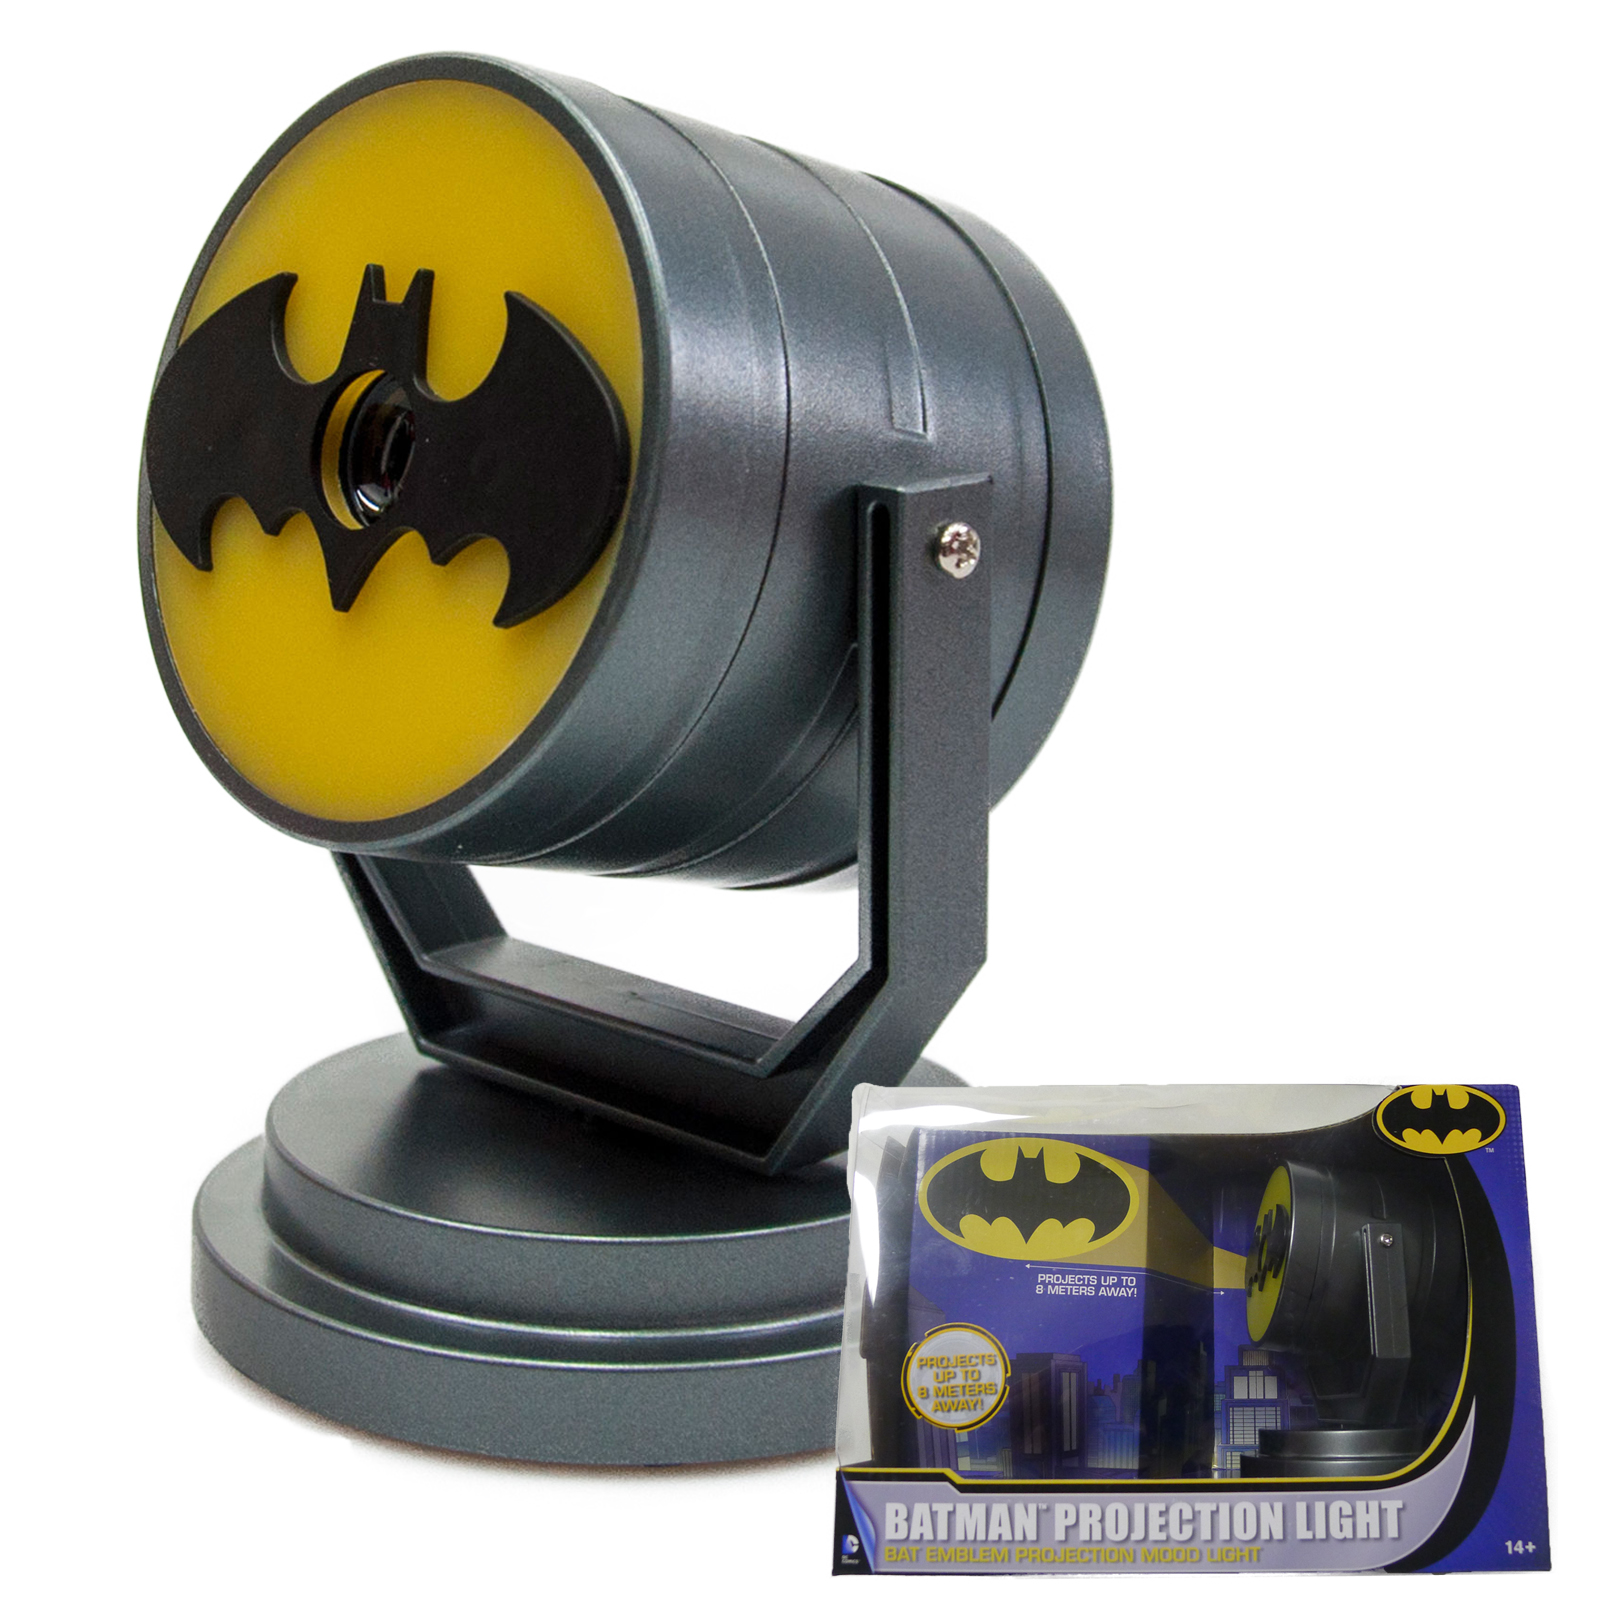 Dc comics batman official bat signal emblem projector desk mood night light ebay - Batman projector night light ...